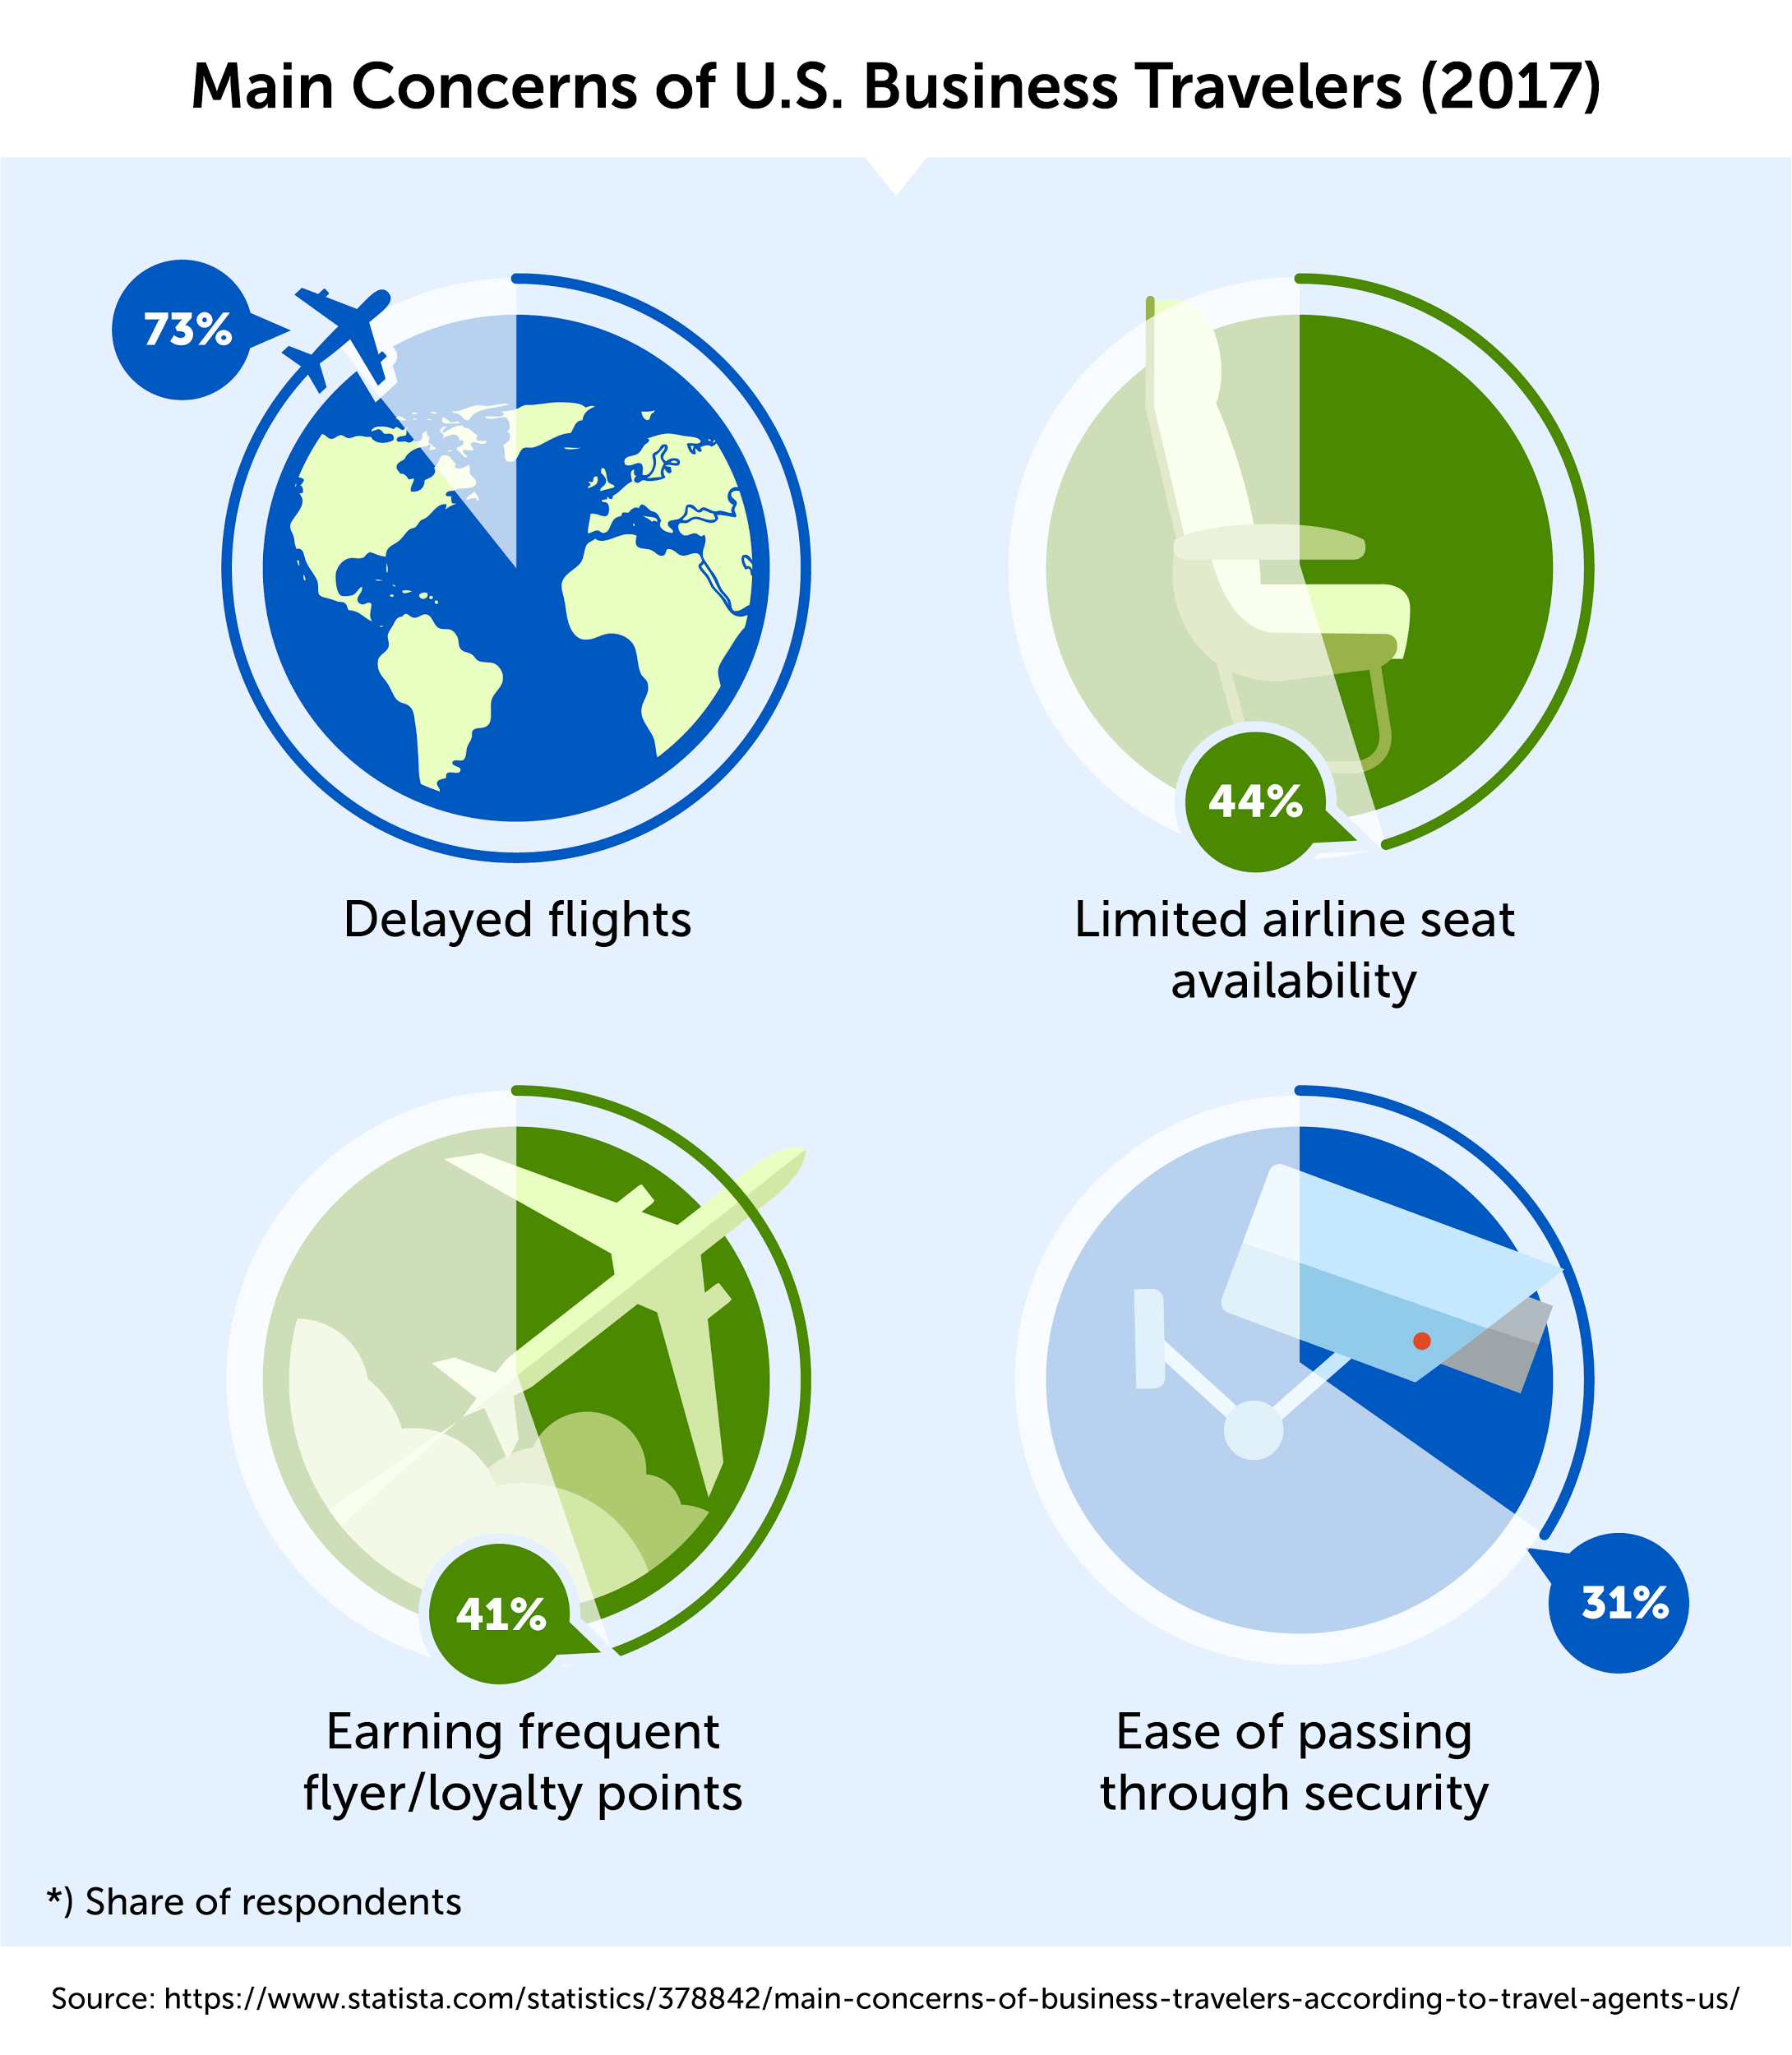 Main Concerns of U.S. Business Travelers (2017)